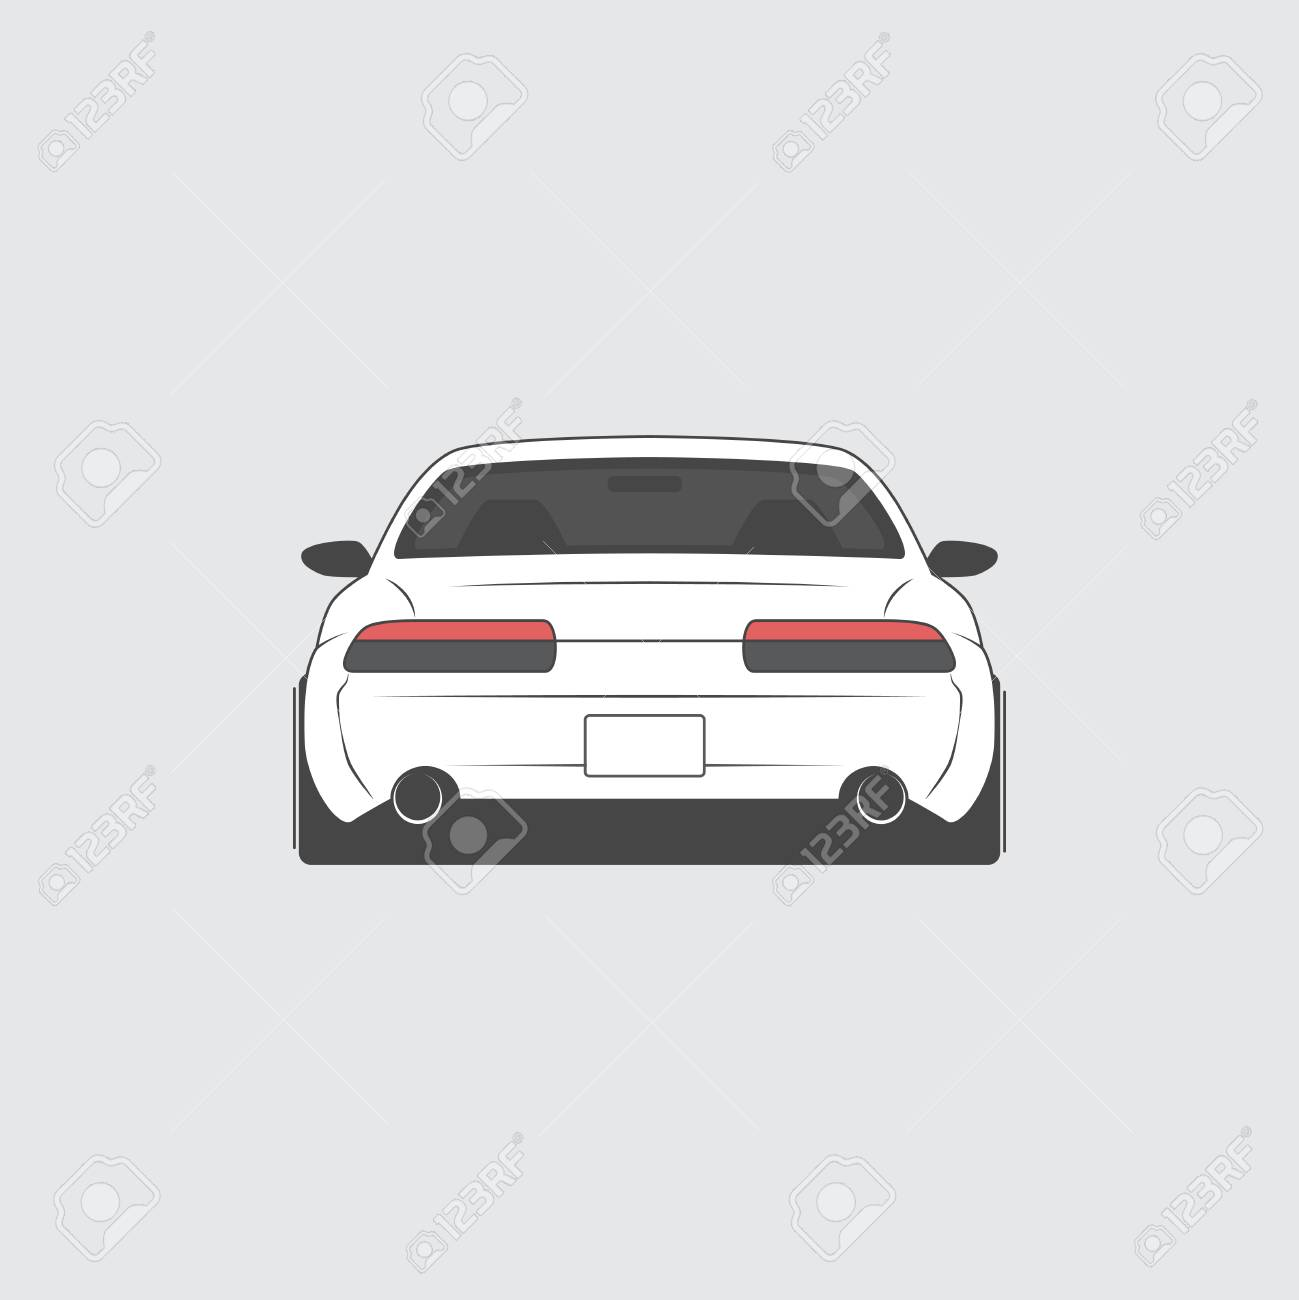 Vector Sport Car Car Sketch Back View Royalty Free Cliparts